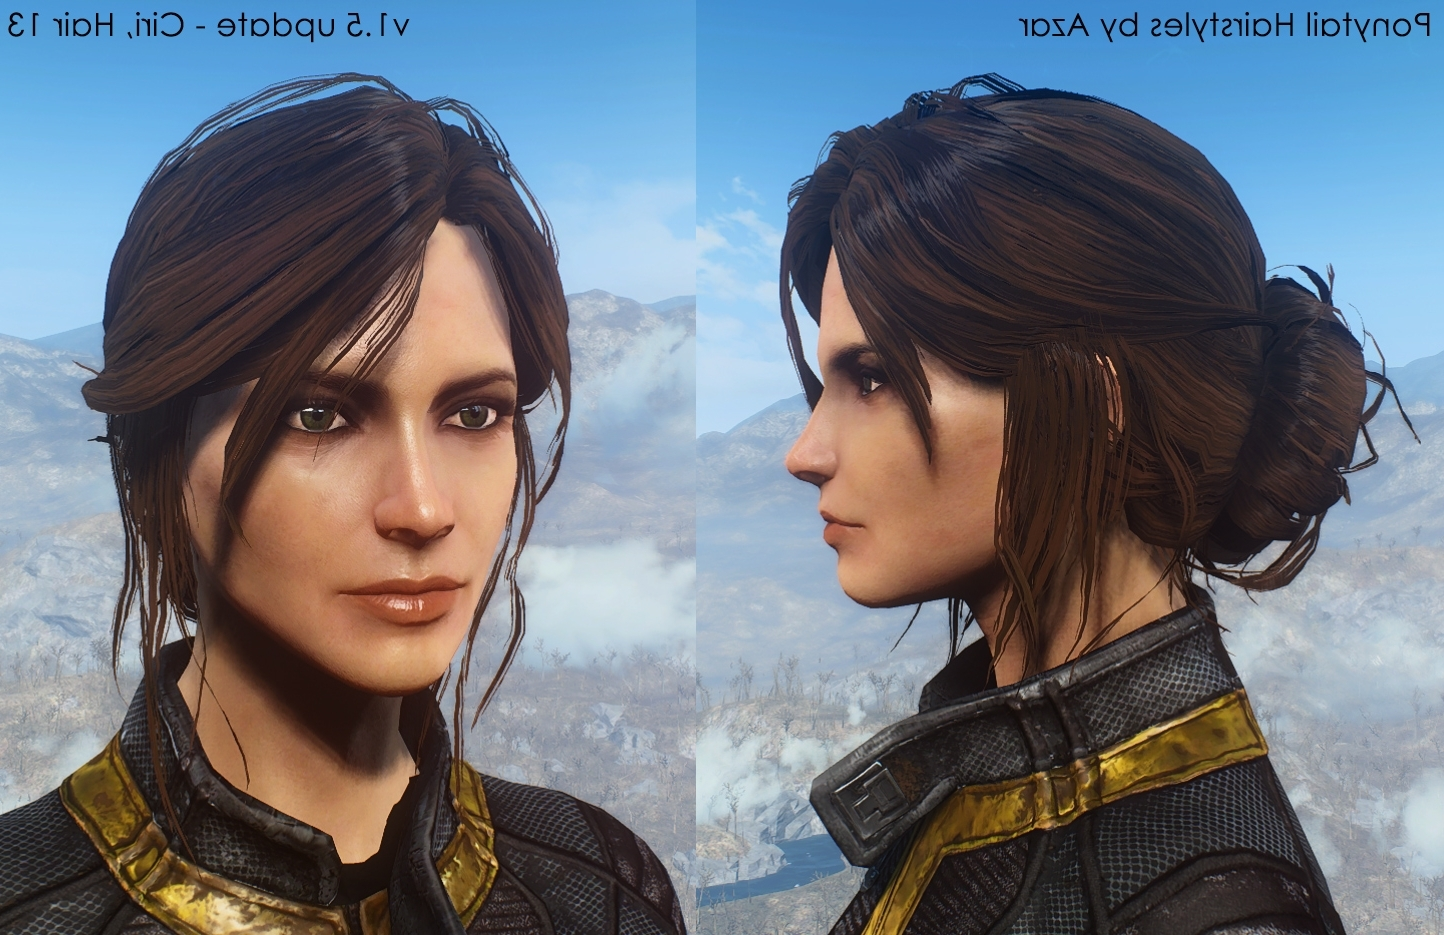 Recent Mod Ponytail Hairstyles Regarding Ponytail Hairstylesazar V2.5A At Fallout 4 Nexus – Mods And (Gallery 7 of 20)